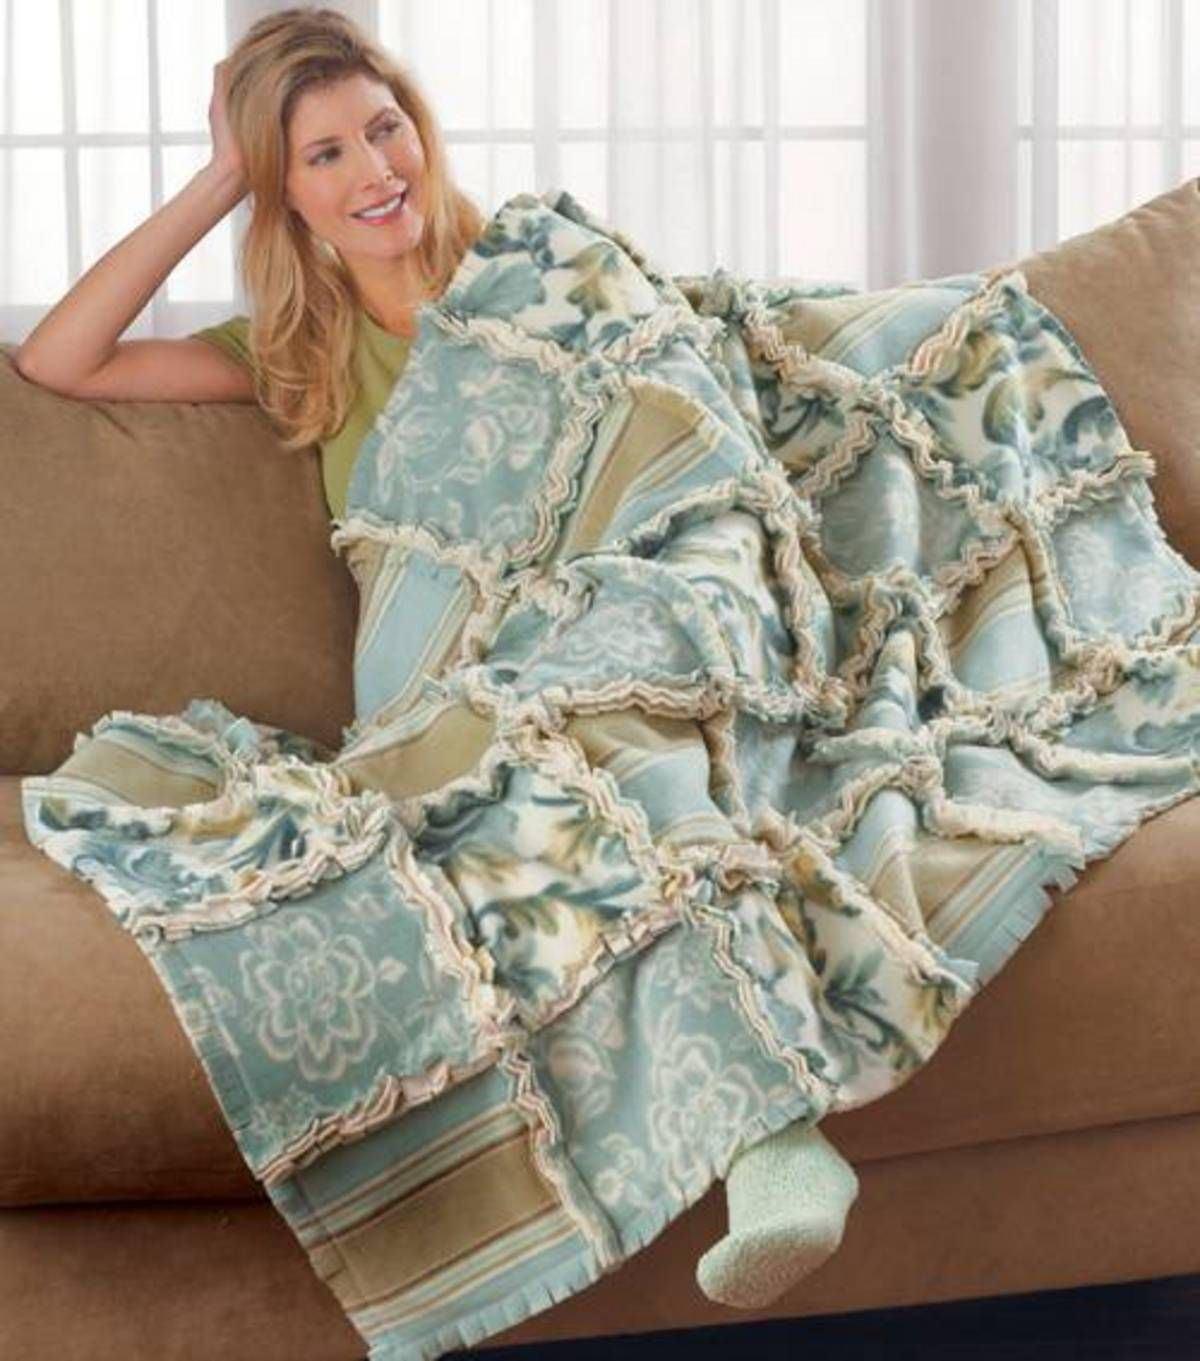 Fleece Ragged Quilt Sewing Projects At Joann